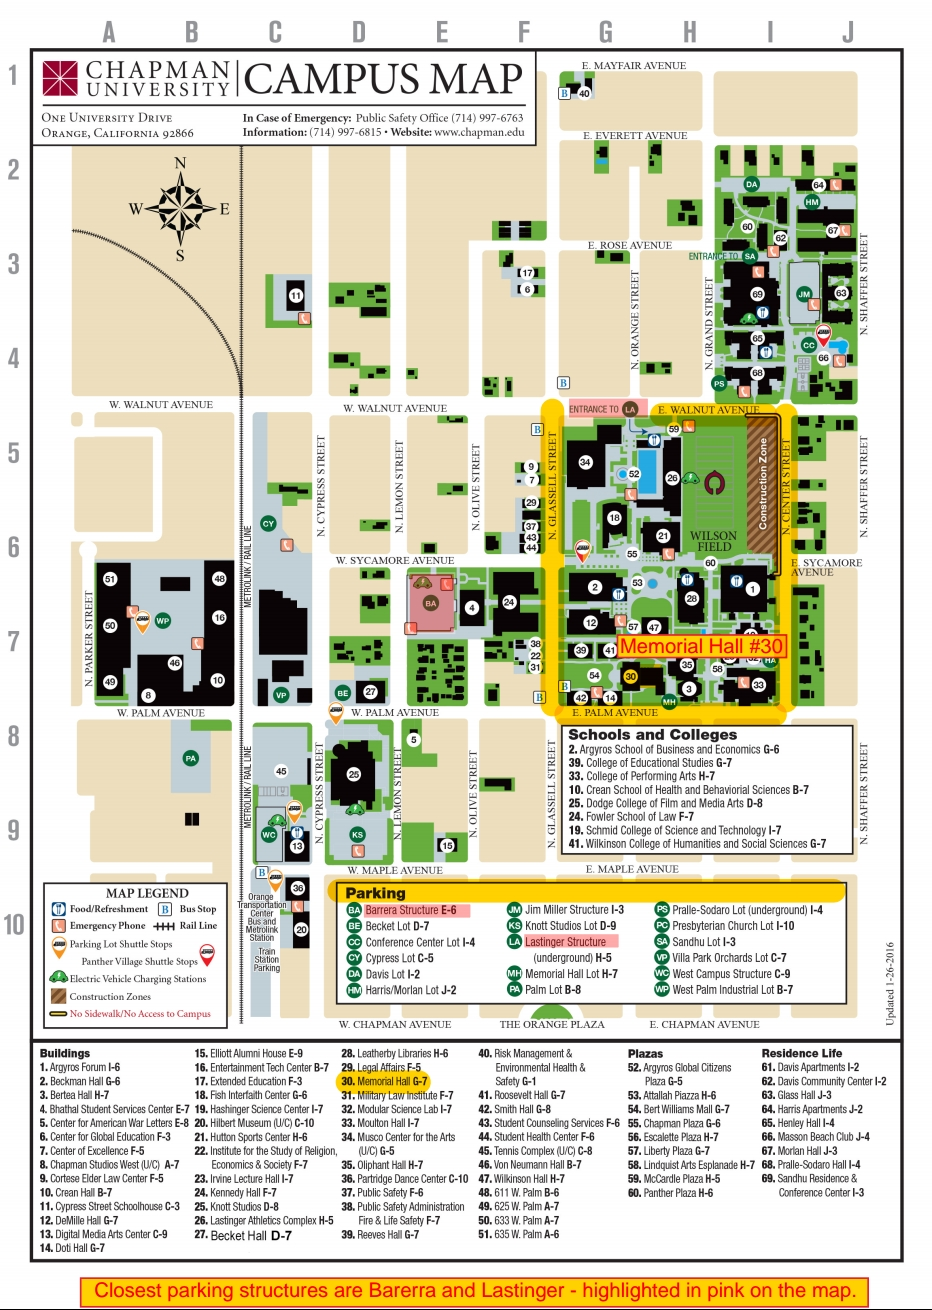 Chapman Campus Map